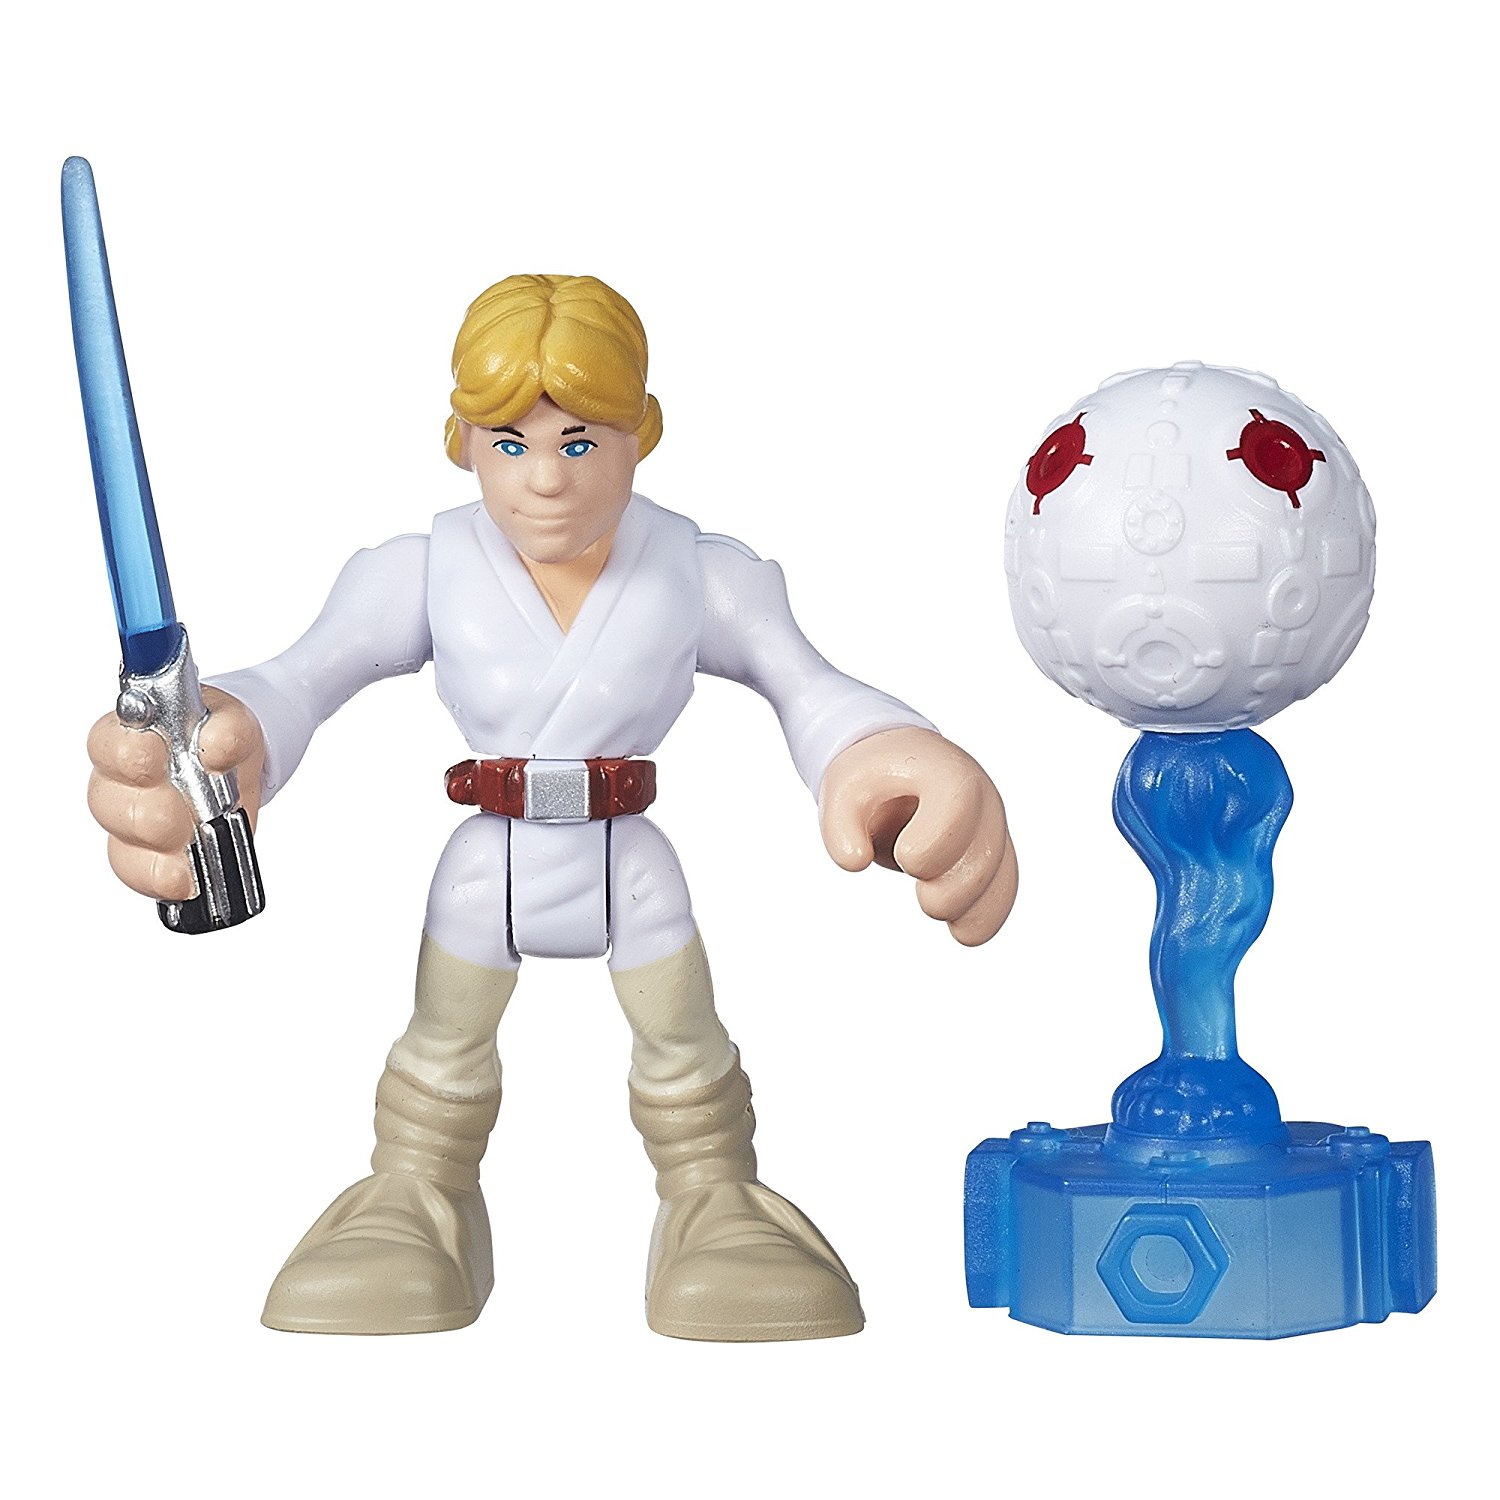 Playskool Heroes Galactic Heroes Star Wars Luke Skywalker by